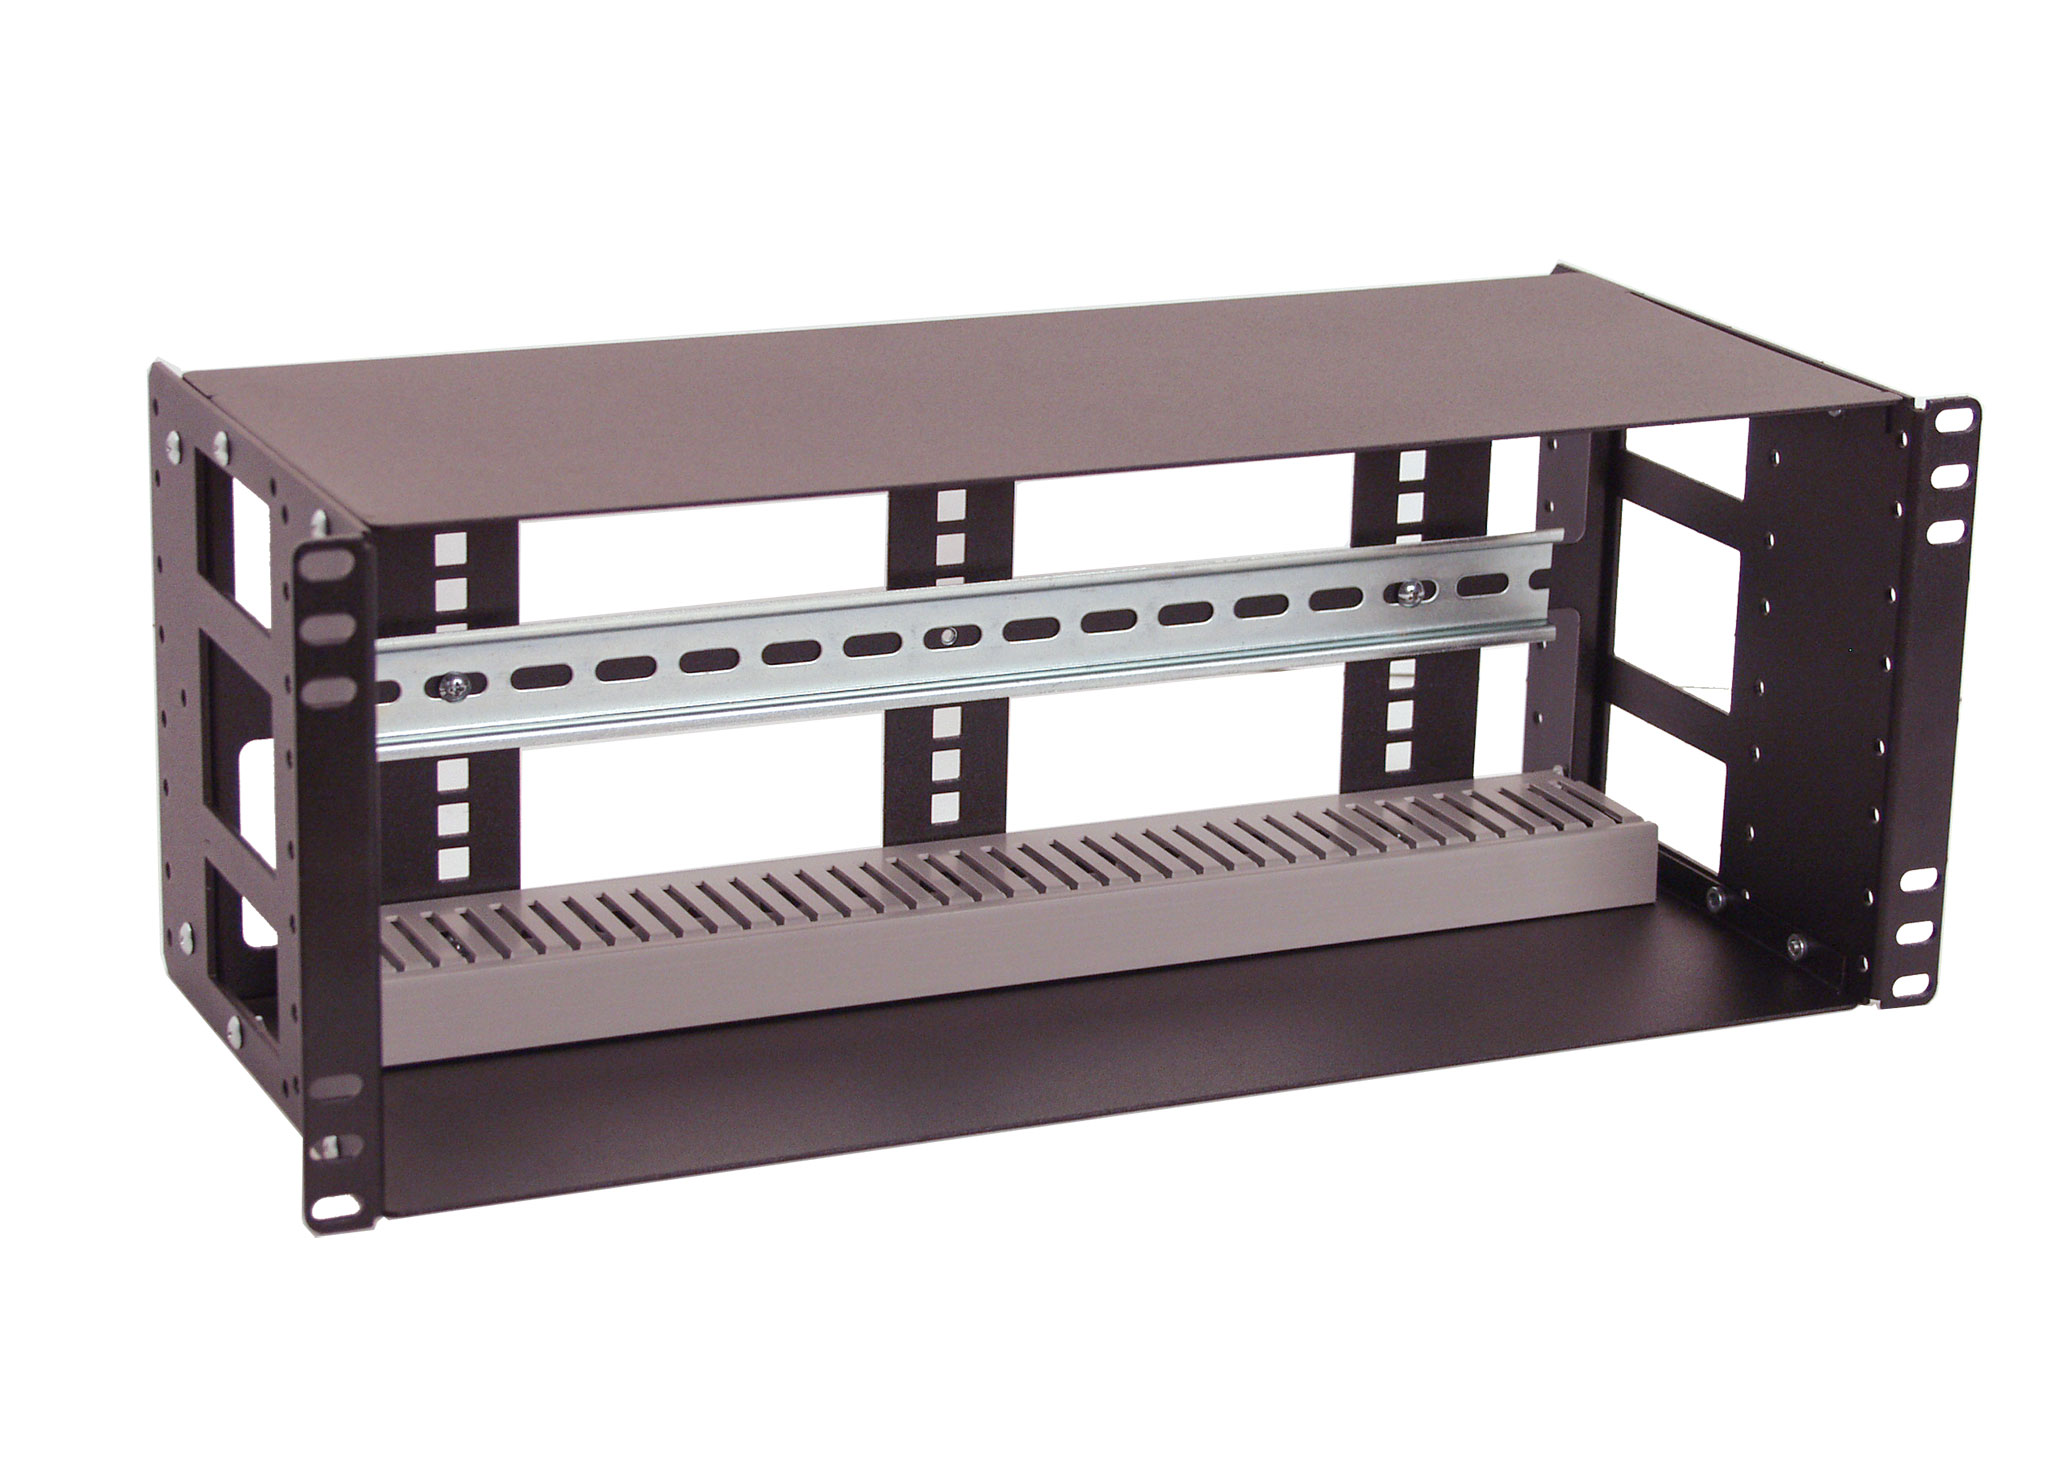 4u Din Rail Enclosure For Standard 19 Quot Rack